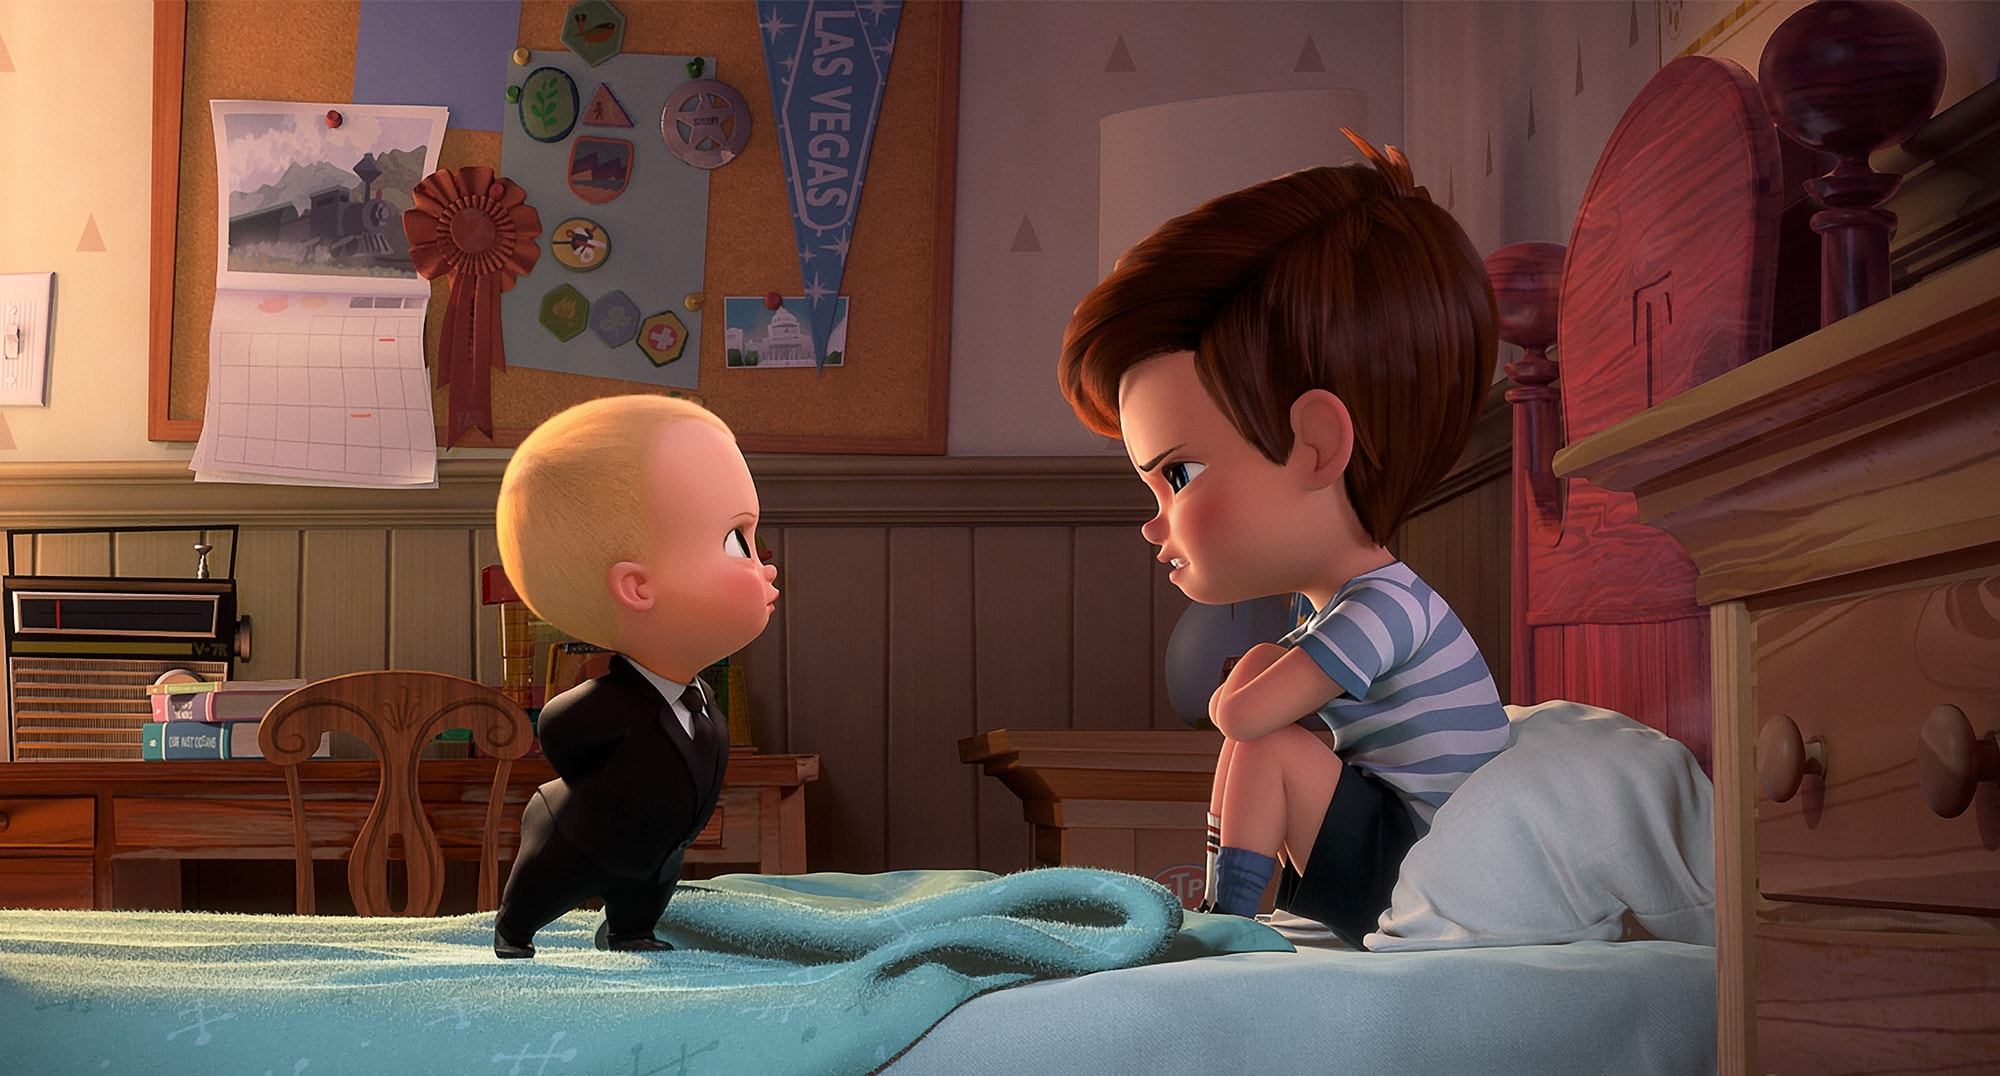 The Boss Baby Wallpapers hd